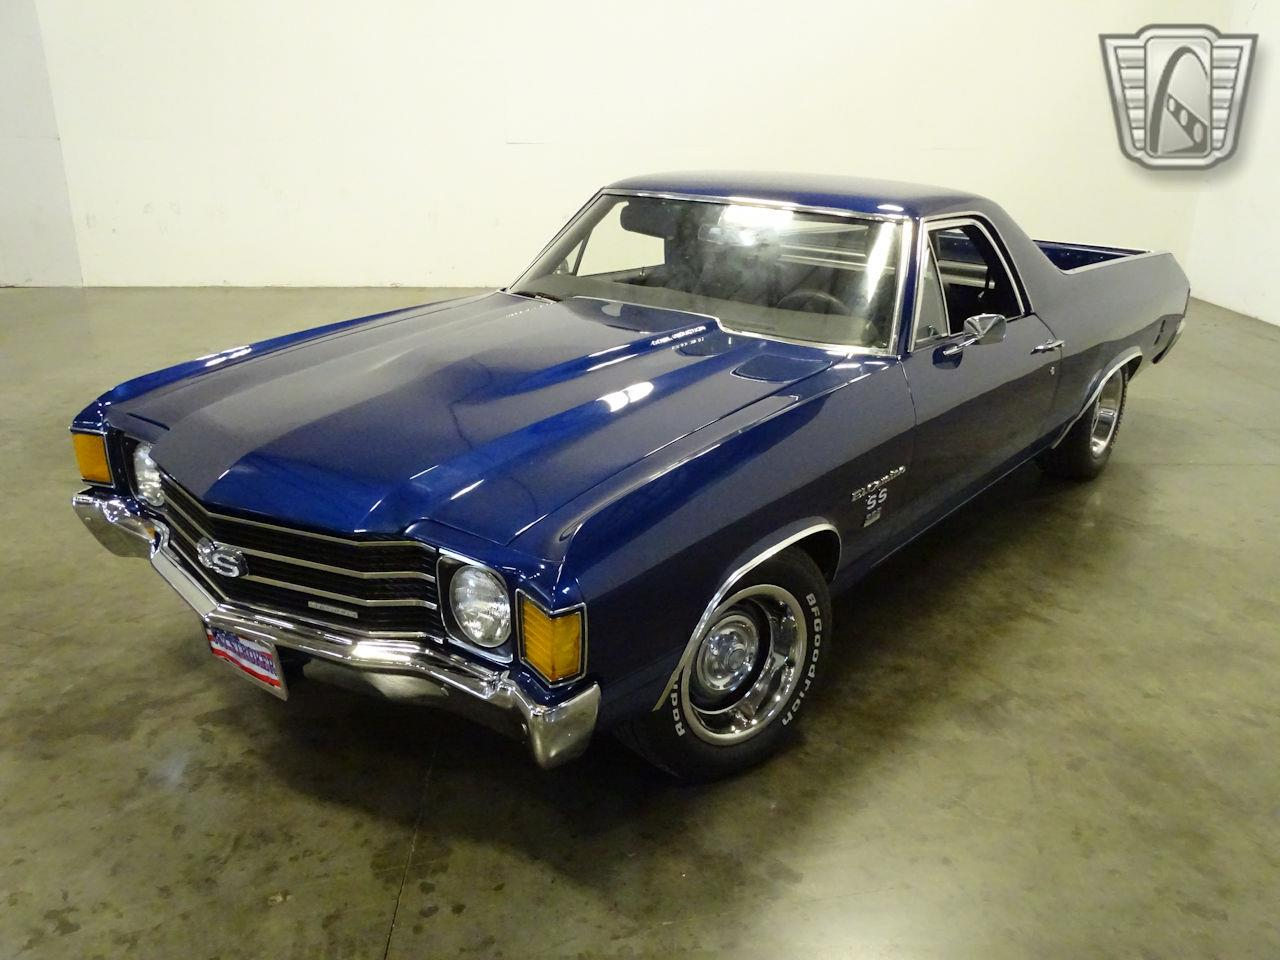 1972 Chevrolet El Camino (CC-1366303) for sale in O'Fallon, Illinois